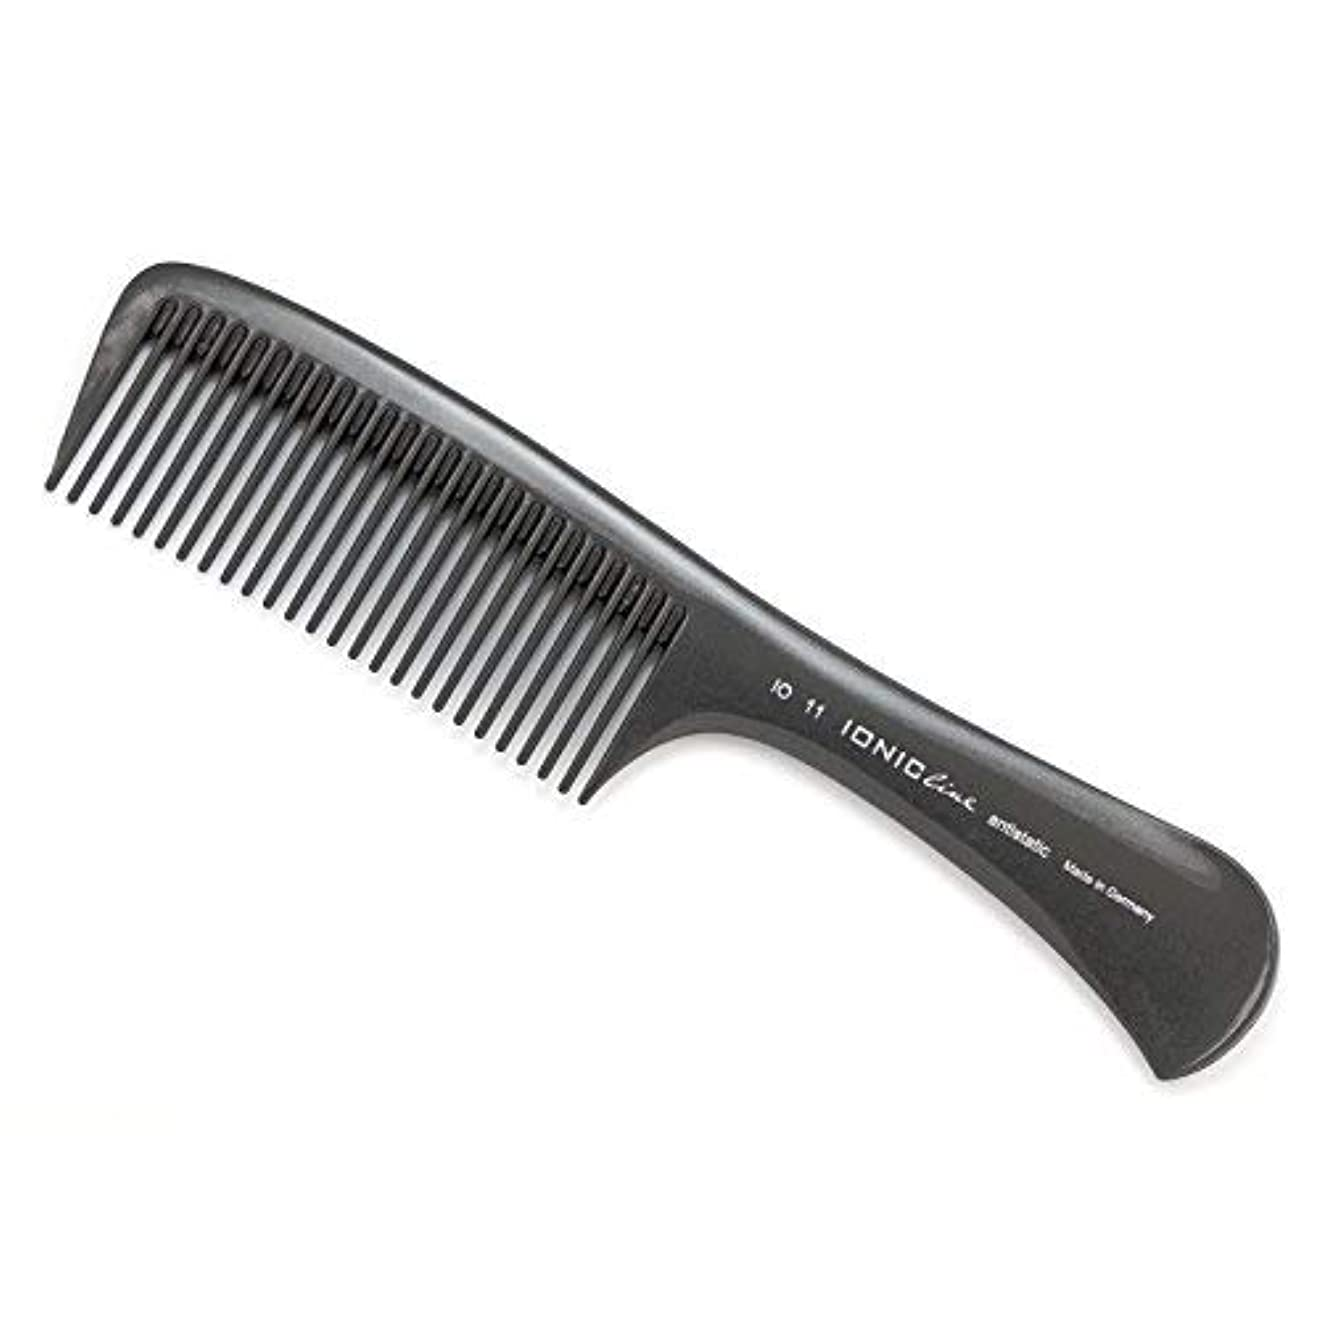 興奮する開示する後退するHercules S?gemann IONIC Line Handle Comb, Big Working Comb | Ionized Thermoplastic - Made in Germany [並行輸入品]